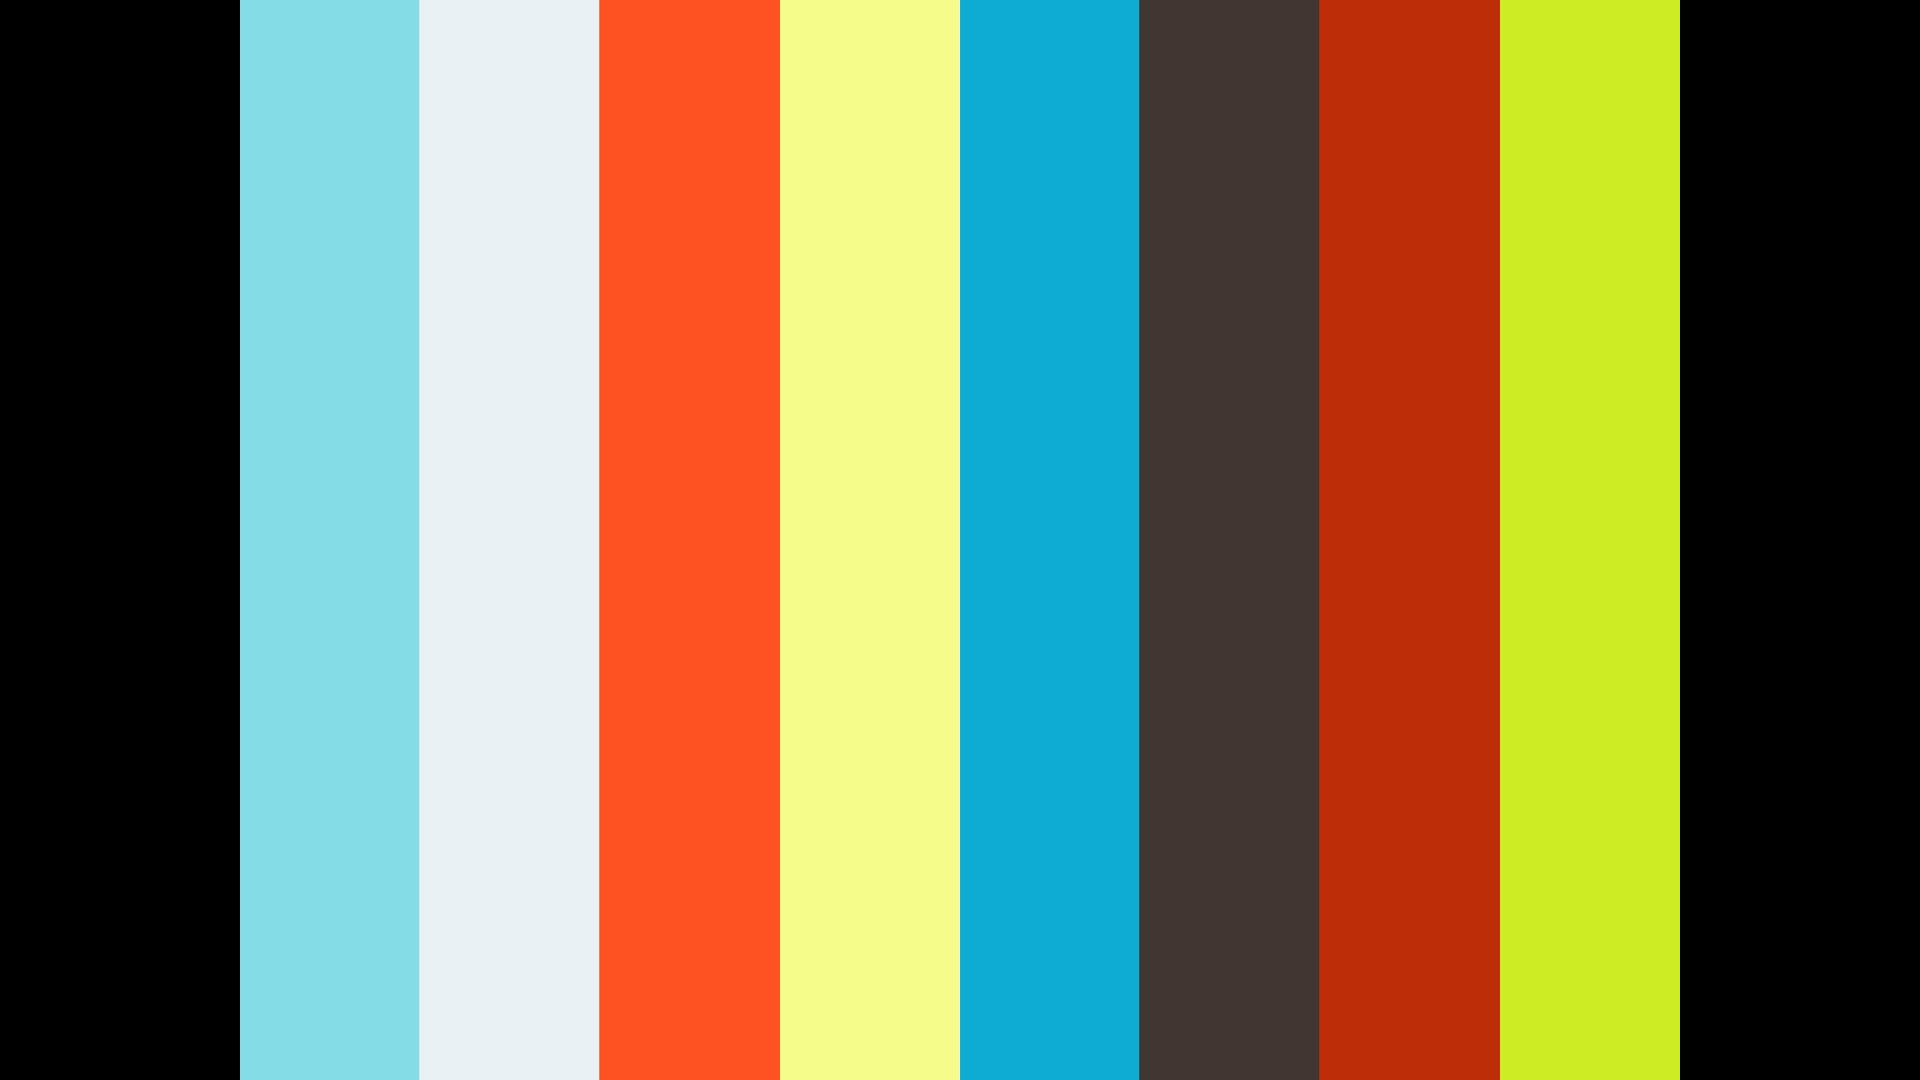 Letting people see Jesus